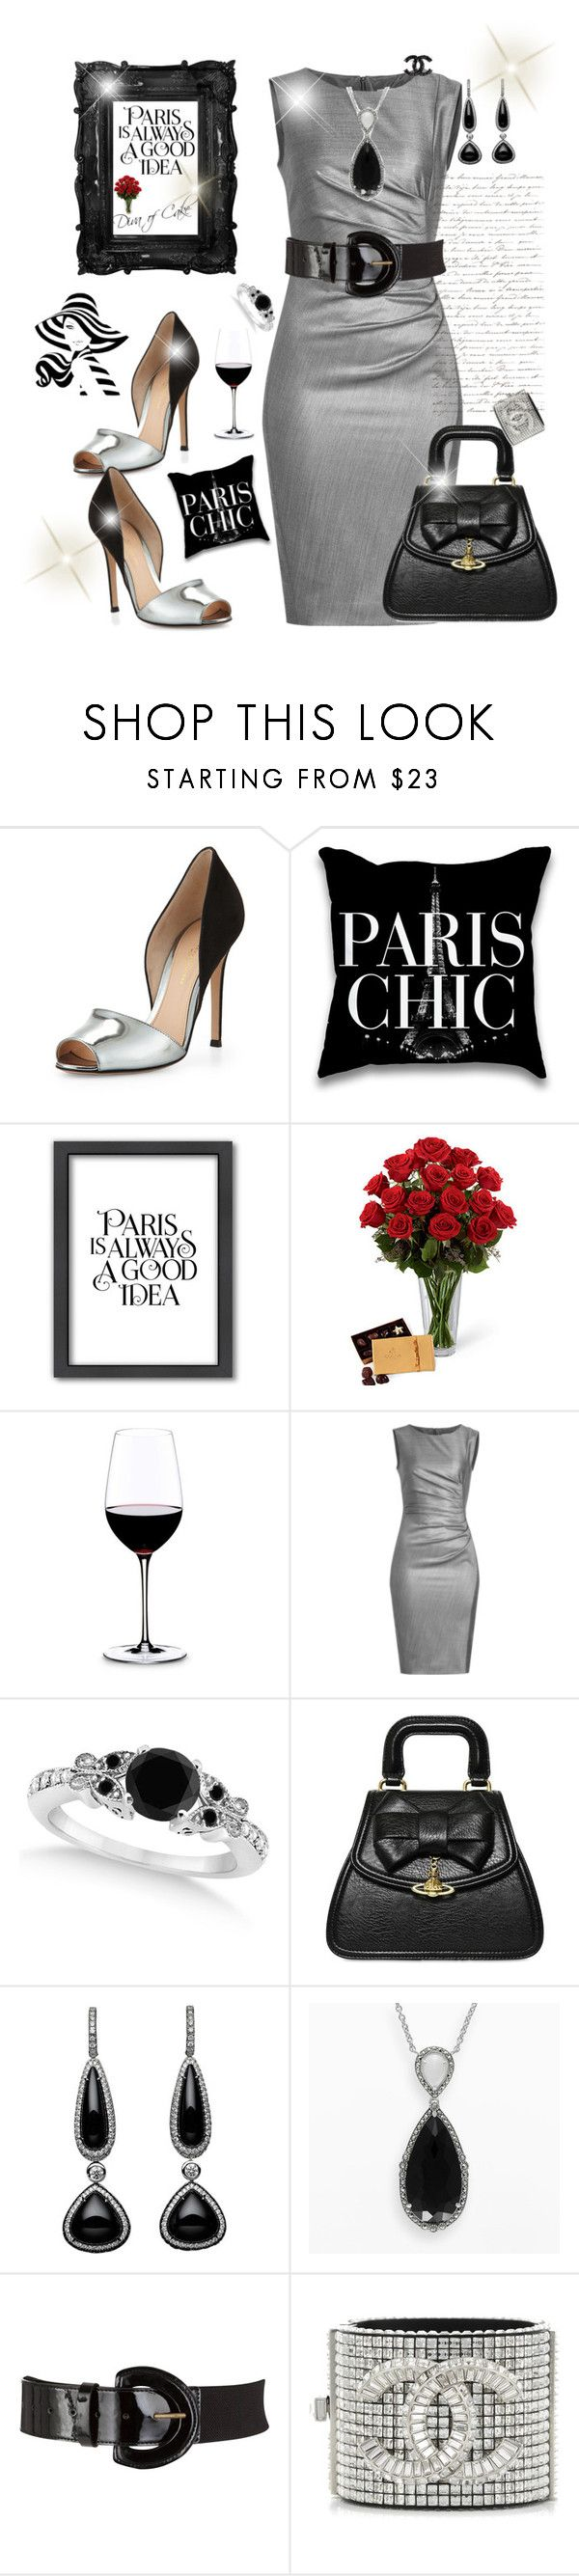 """Grey and black outfit Paris the moment"" by Diva of Cake on Polyvore featuring Gianvito Rossi, Americanflat, Riedel, MaxMara, Allurez, Vivienne Westwood, Lavish by TJM and John Lewis"